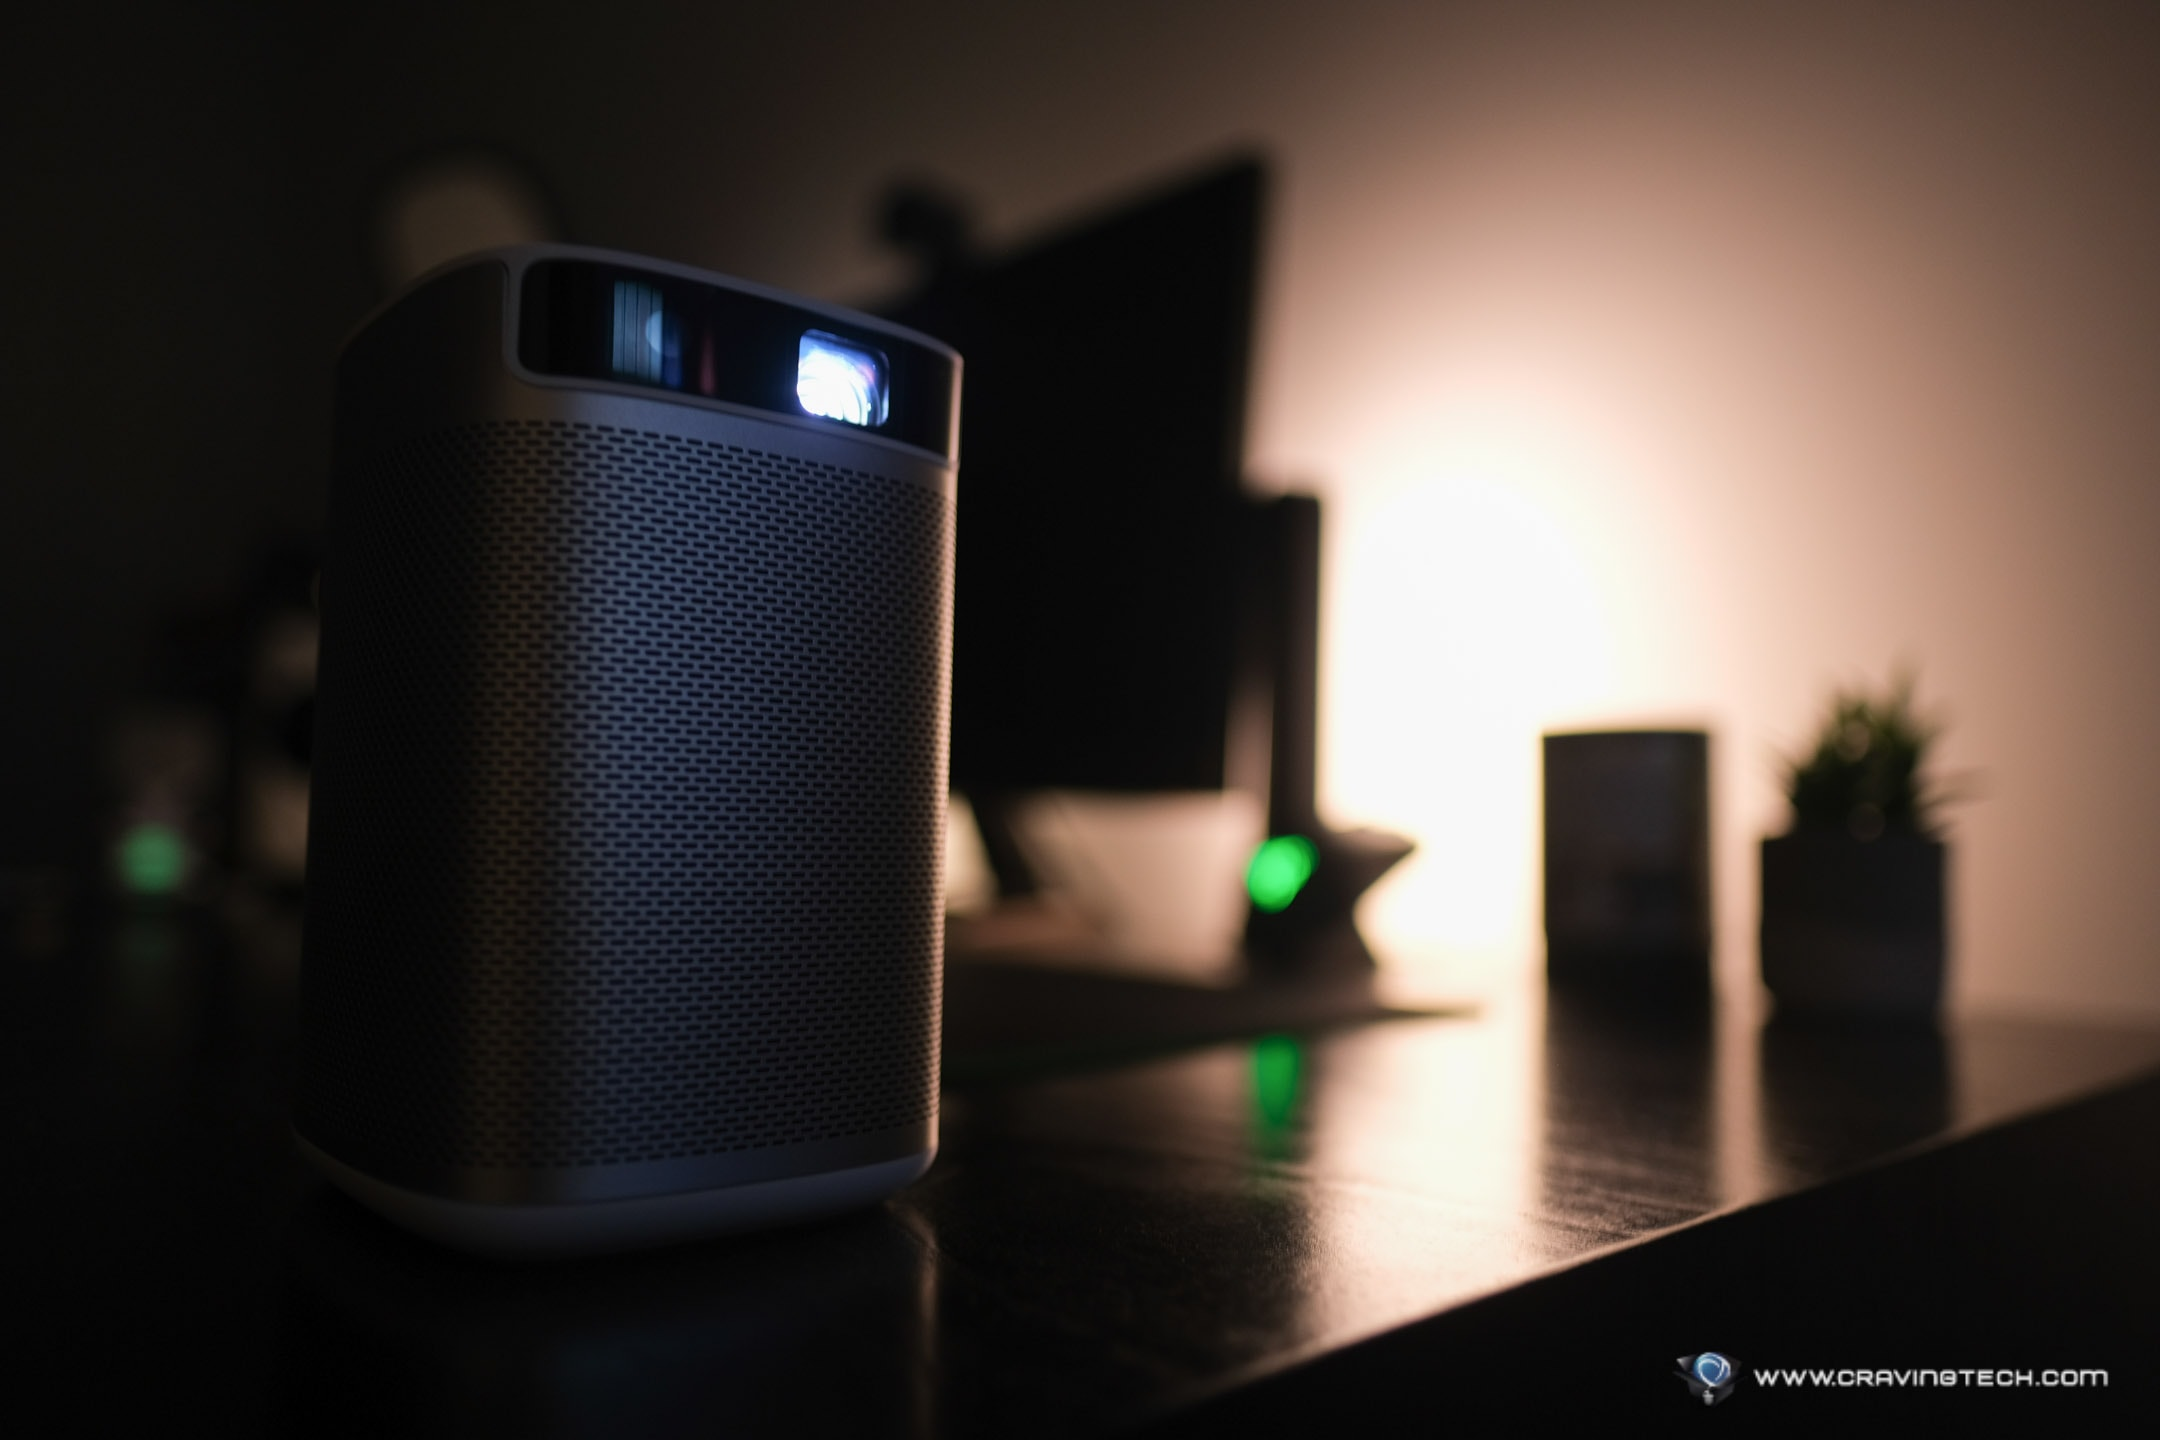 An awesome, 1080p Portable Projector with Android TV & Harman-Kardon speakers – XGIMI MoGo Pro Review